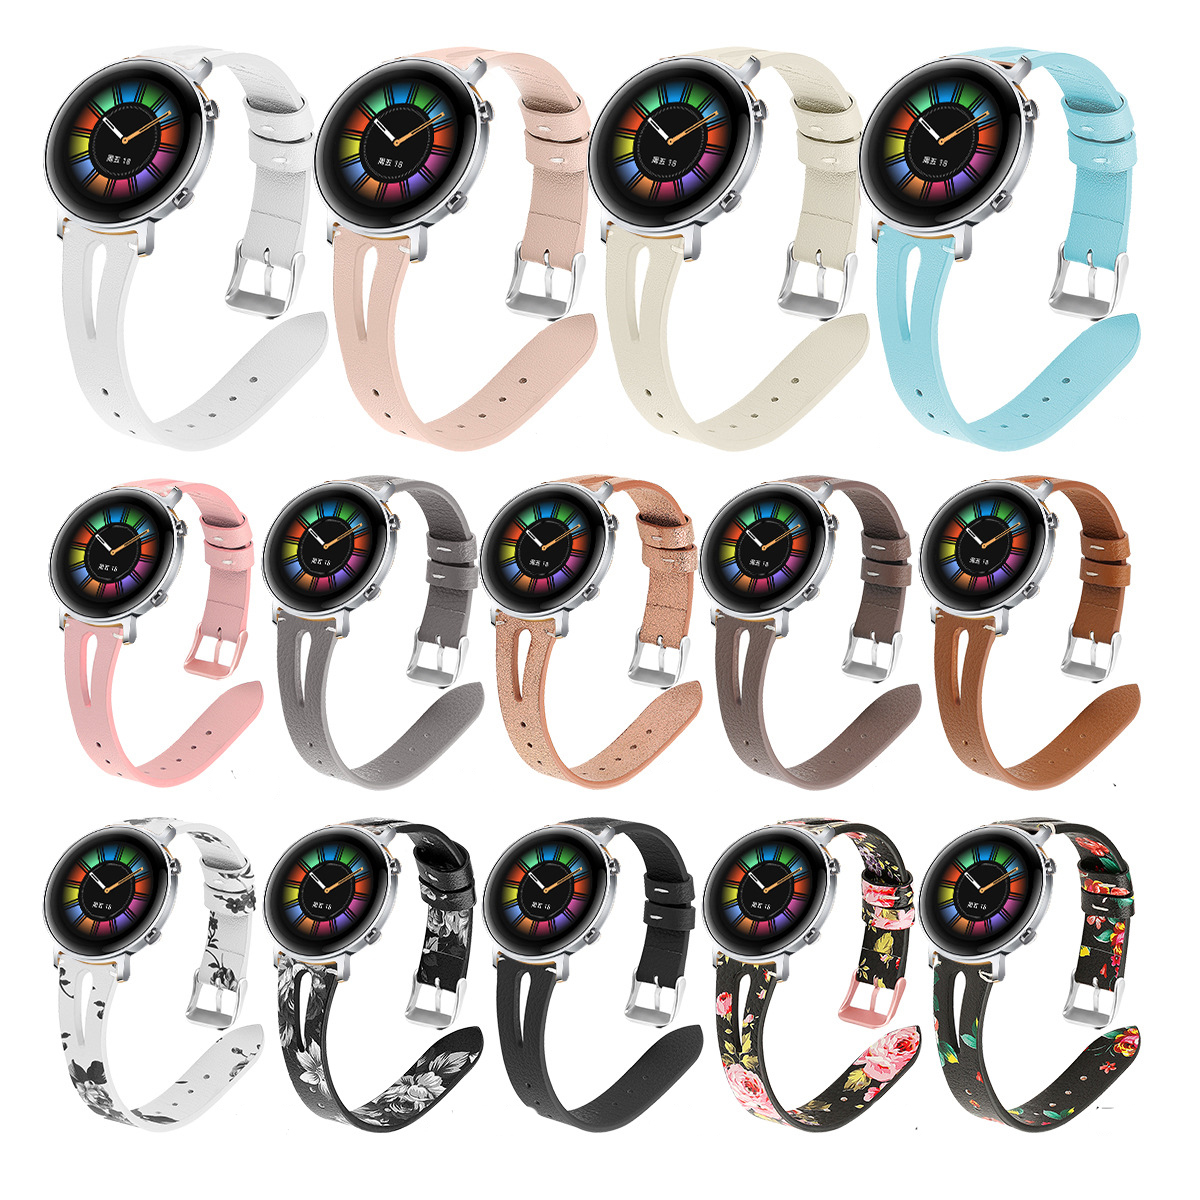 Leather Straps For Huawei Watch GT/GT2 Watch Band 20mm 22mm Watch Strap For Sumsung Galaxy Actibe 2 1 46mm 42mm Bands Sport